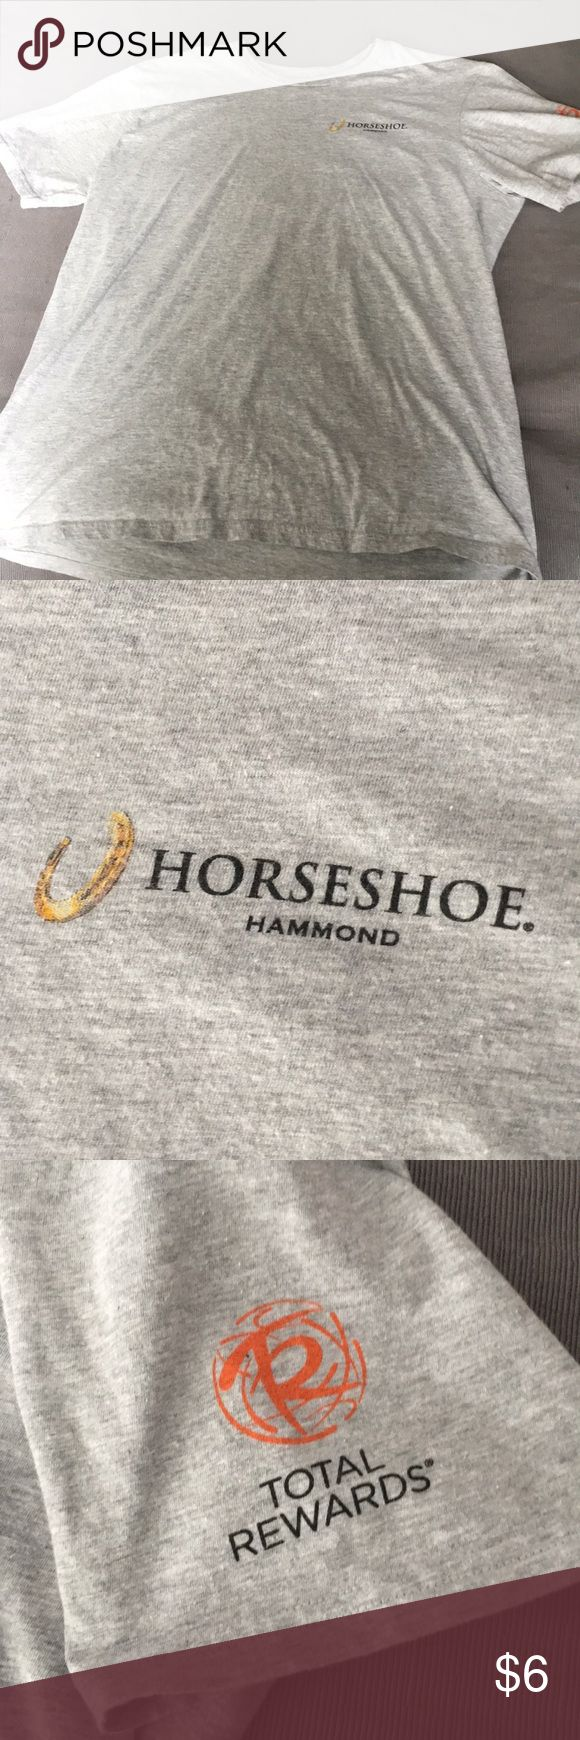 """Horseshoe t- Shirt """"monopoly win big"""" XL grey Horseshoe casino T-shirt from Hammond, Indiana With """"total reward"""" on the sleeve and """"play here monopoly win big"""" XL grey Shirts Tees - Short Sleeve"""